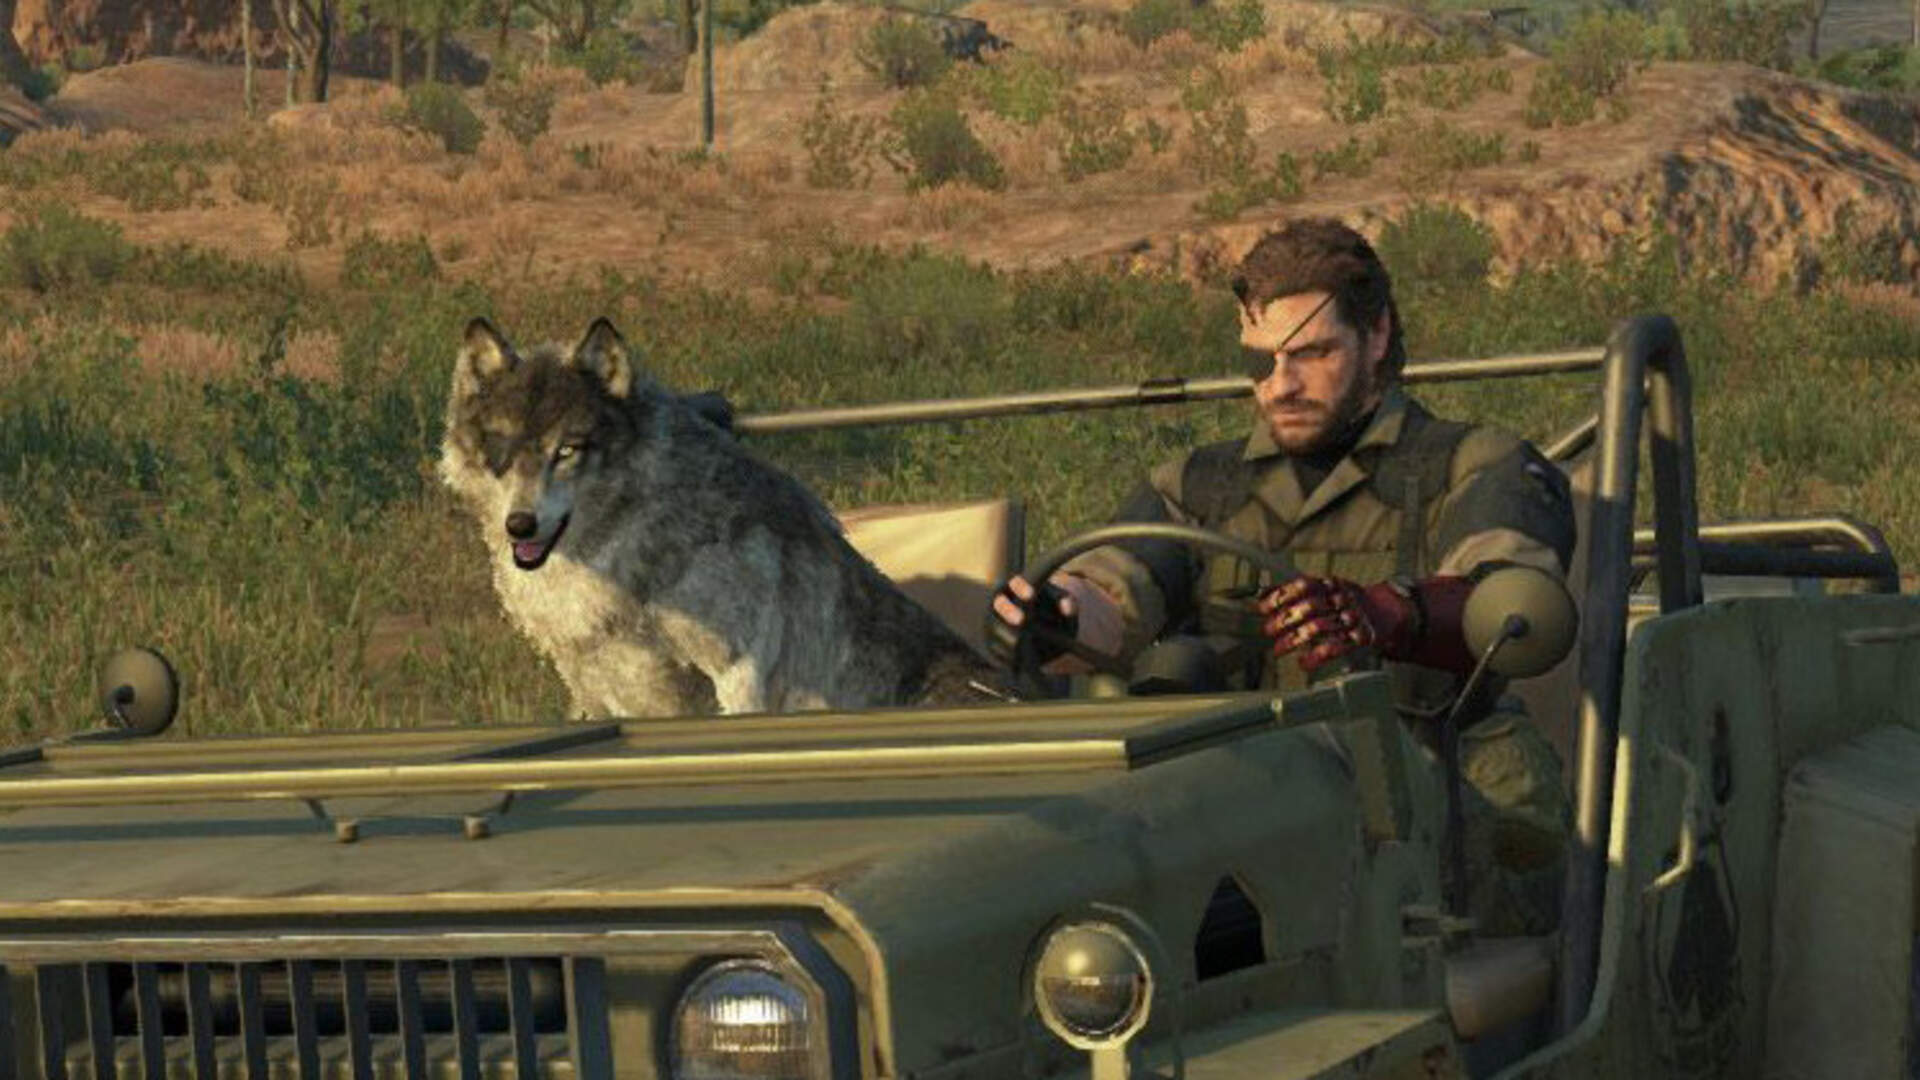 Metal Gear Solid 5 - On the Trail Mission Guide - Mission 19 - How to get S Rank